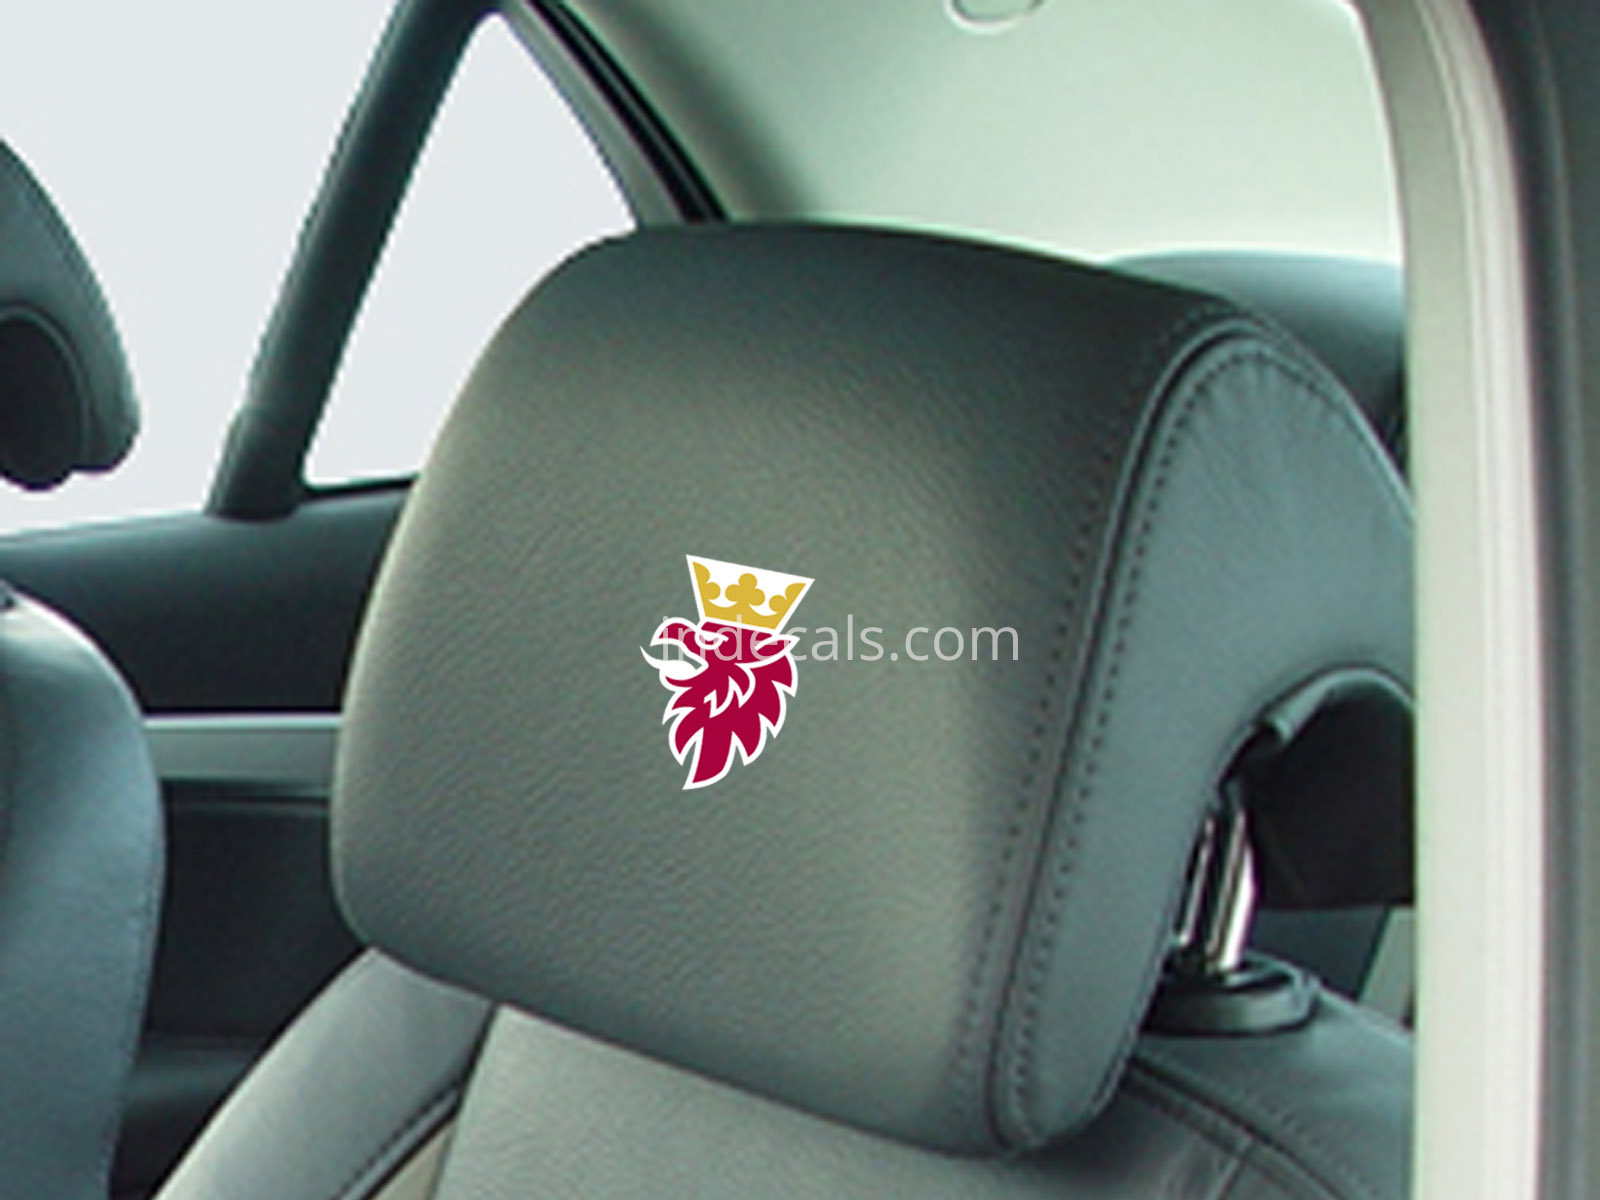 5 x Saab stickers for Headrests